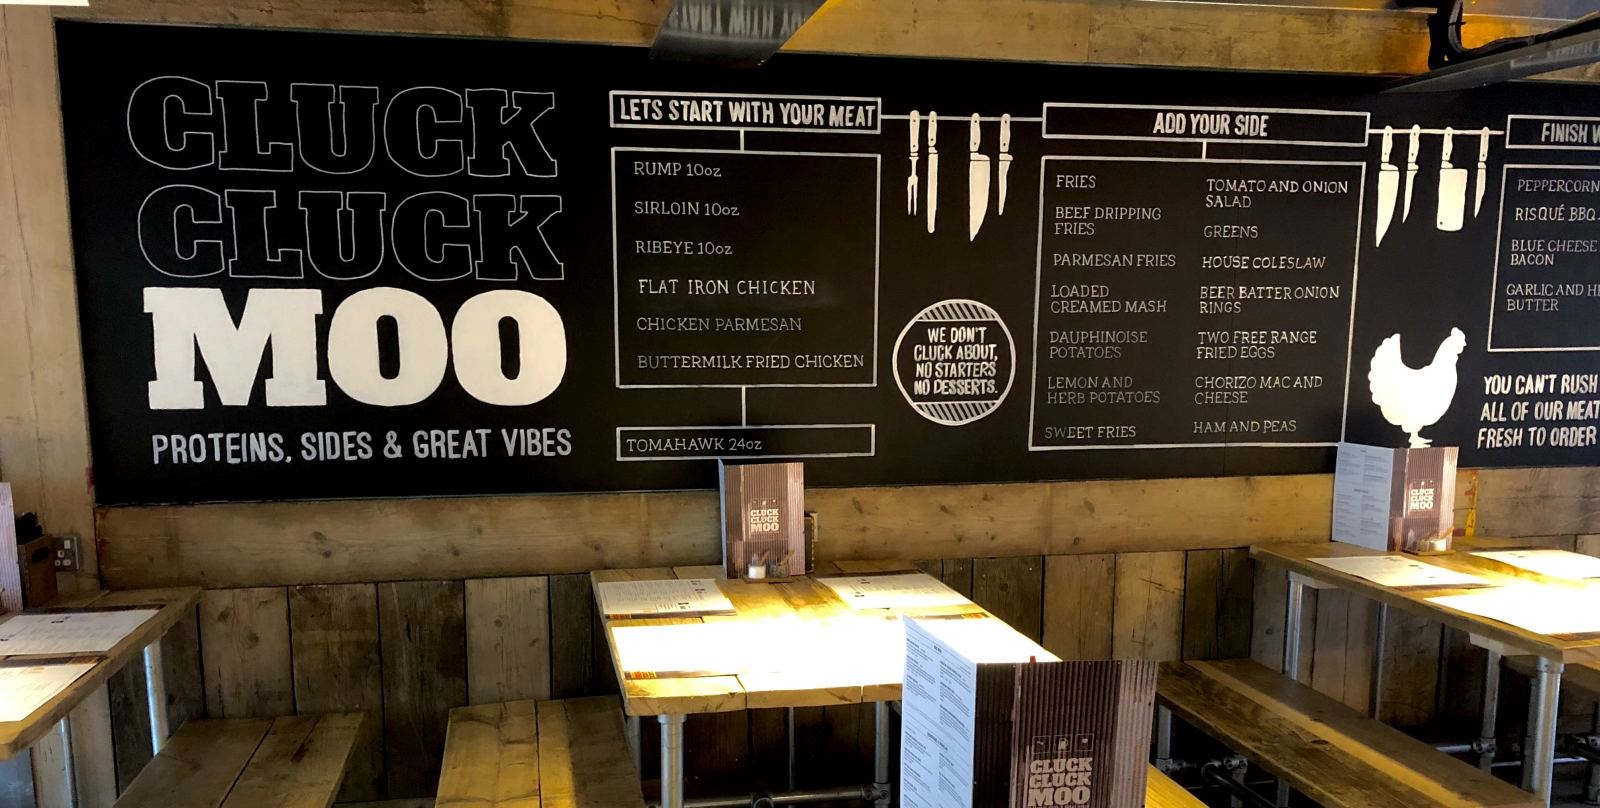 Cluck cluck Moo at STACK Newcastle Lead Image Menu Board